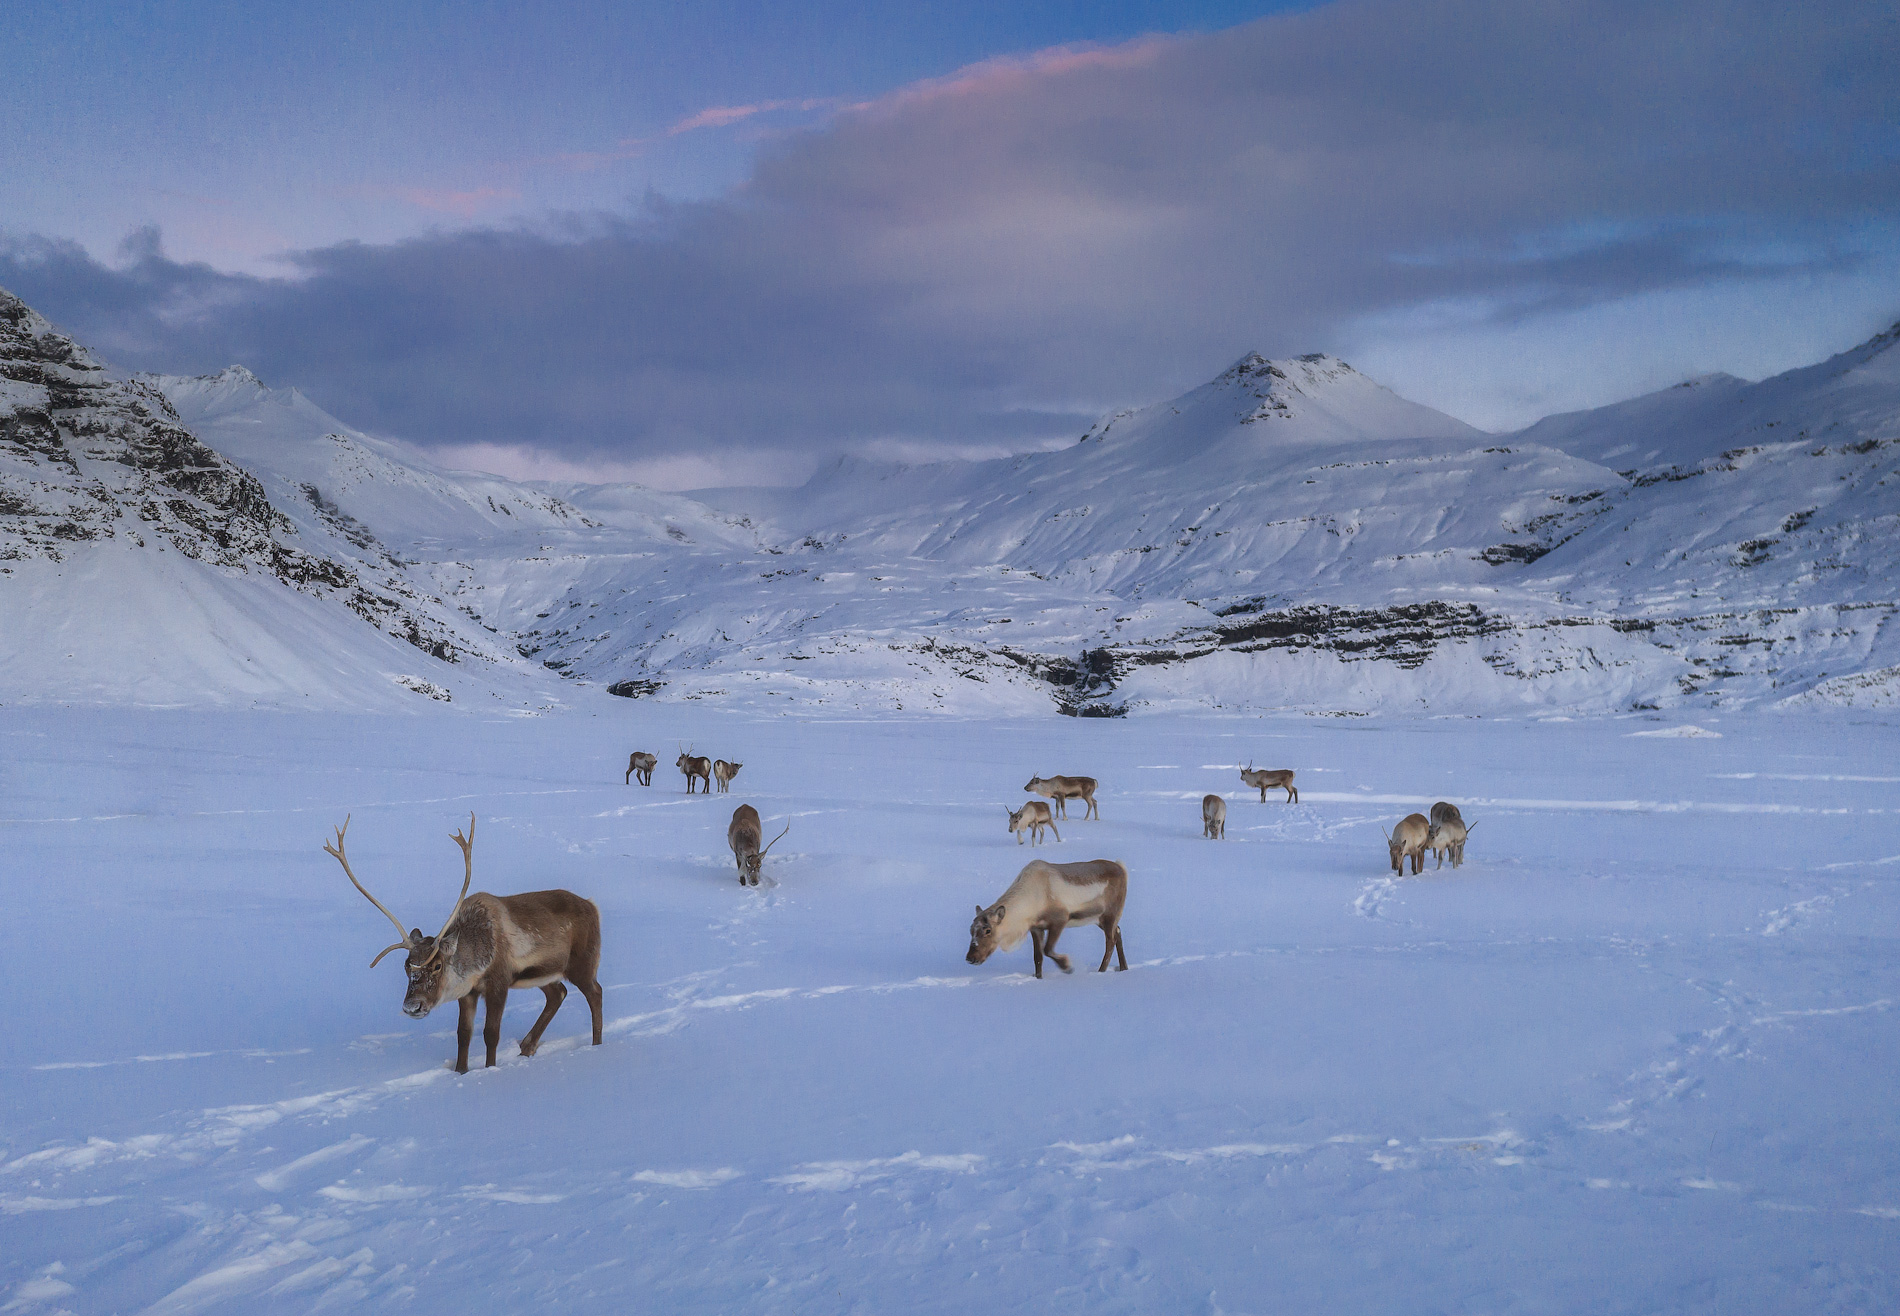 If you're lucky, you might spot some wild reindeer during your time in the Eastfjords.